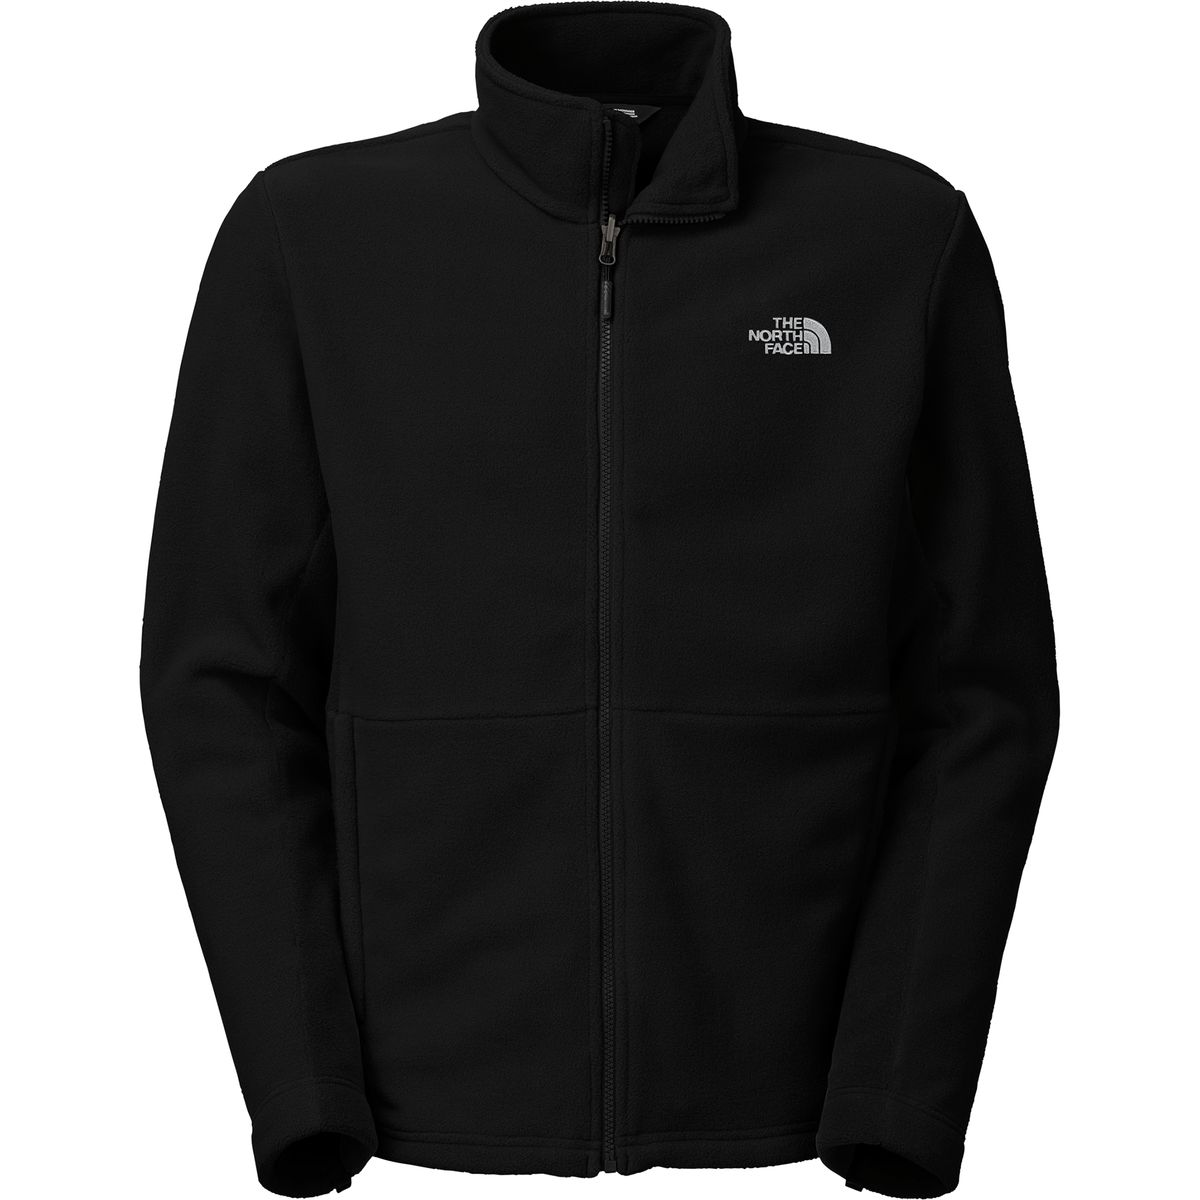 The North Face RDT 300 Jacket